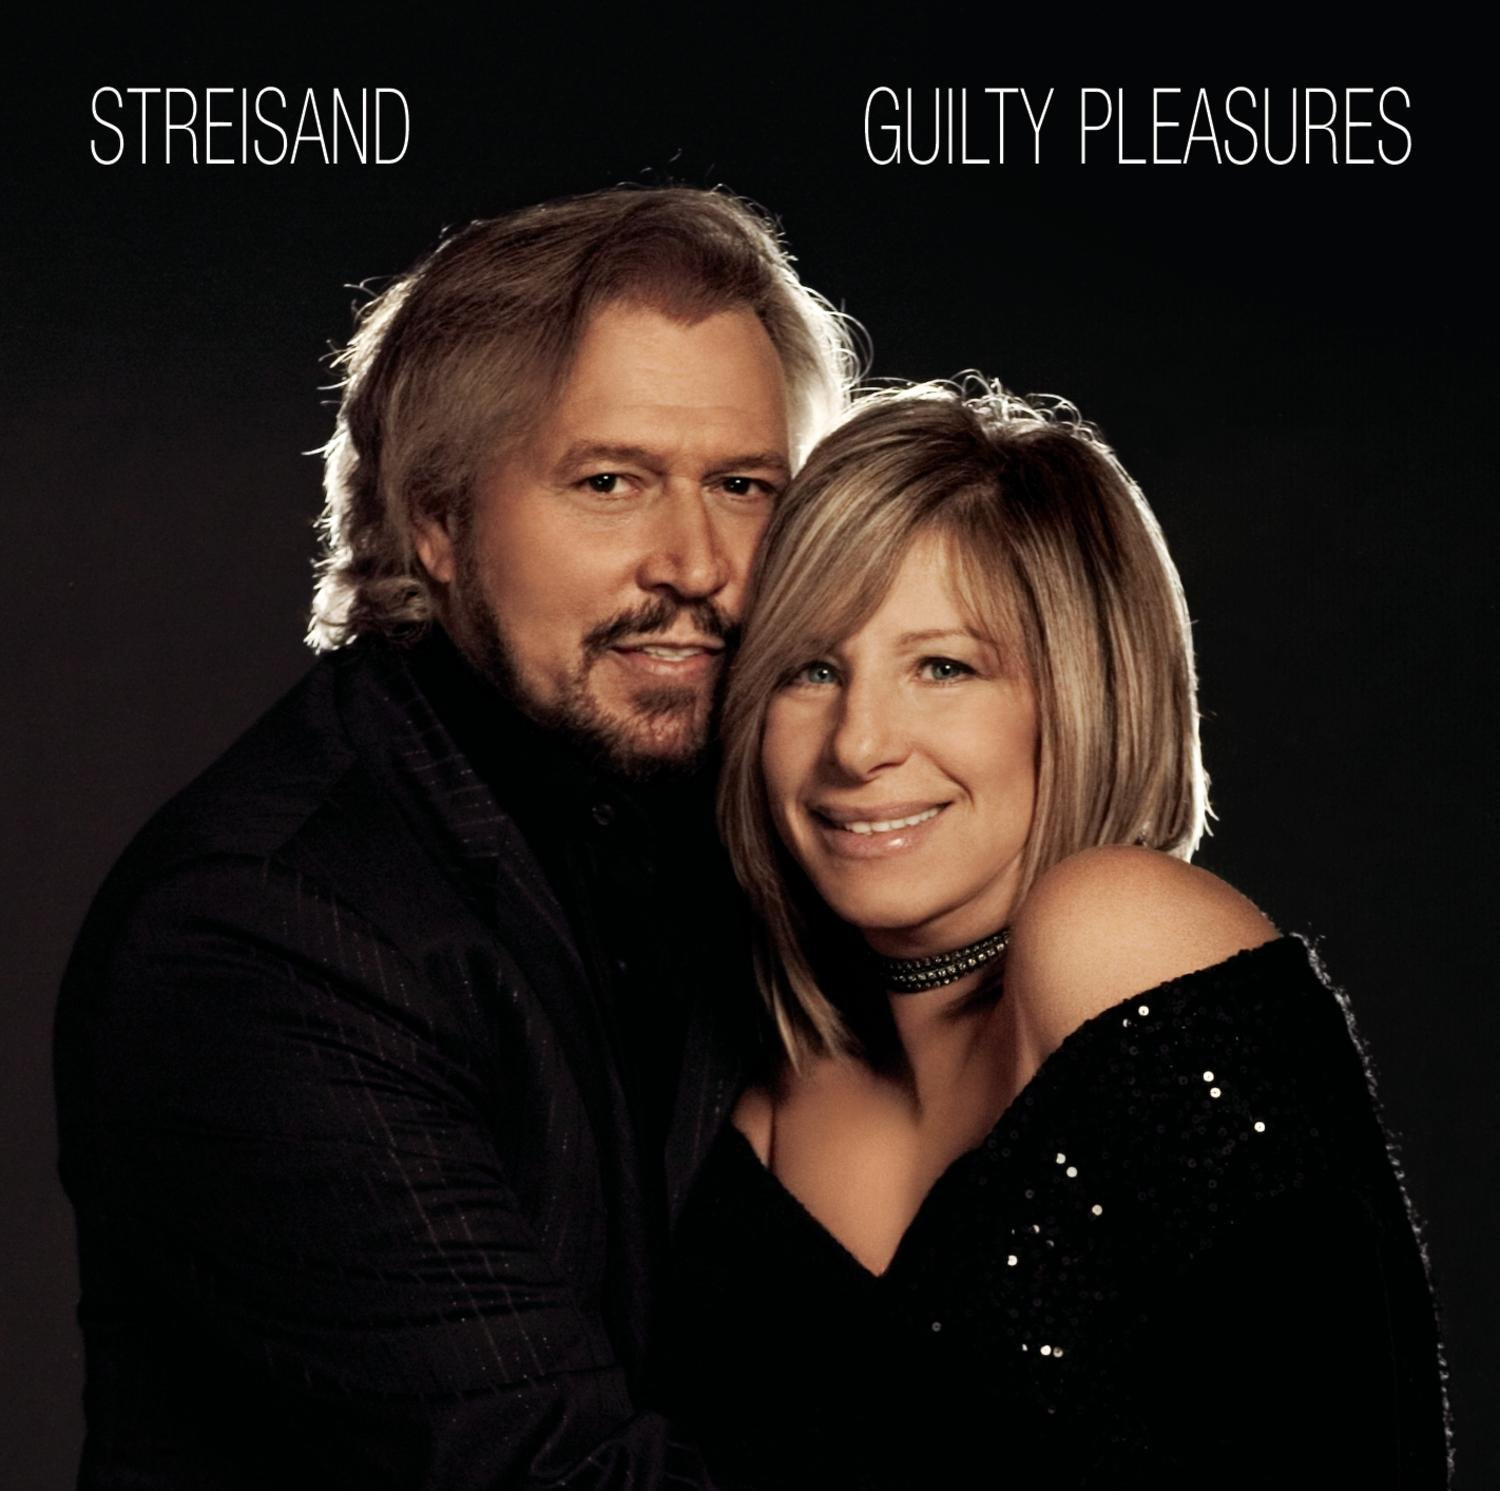 CD : Barbra Streisand - Guilty Pleasures (CD)